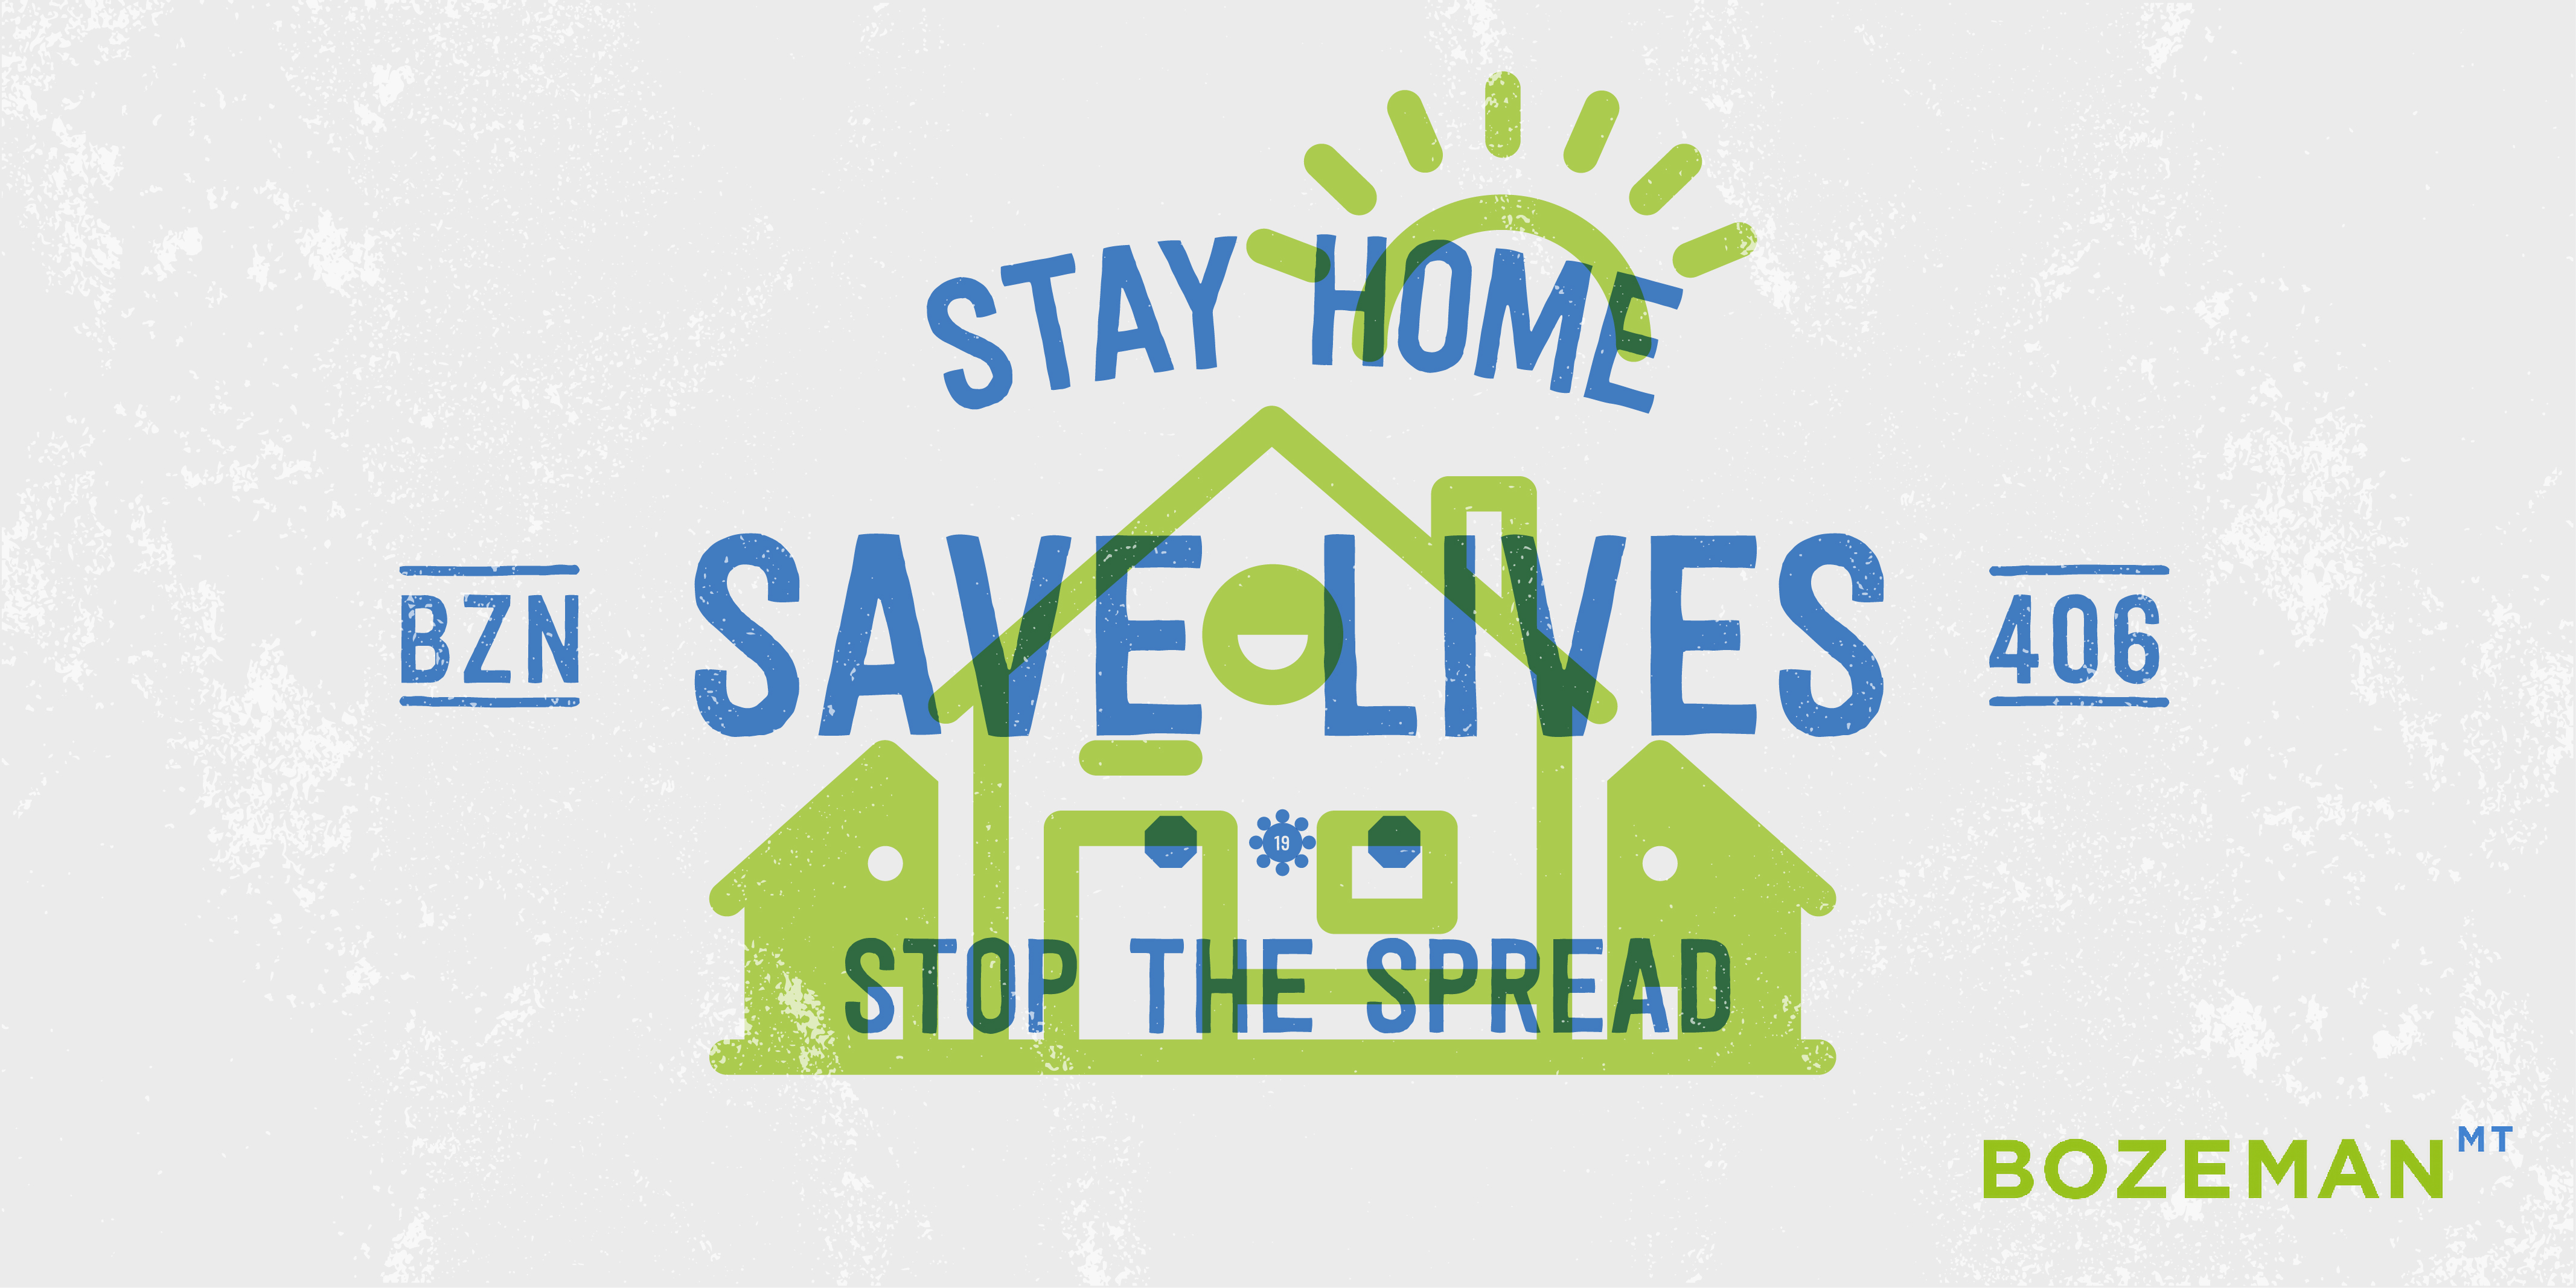 Stay at home, save lives.